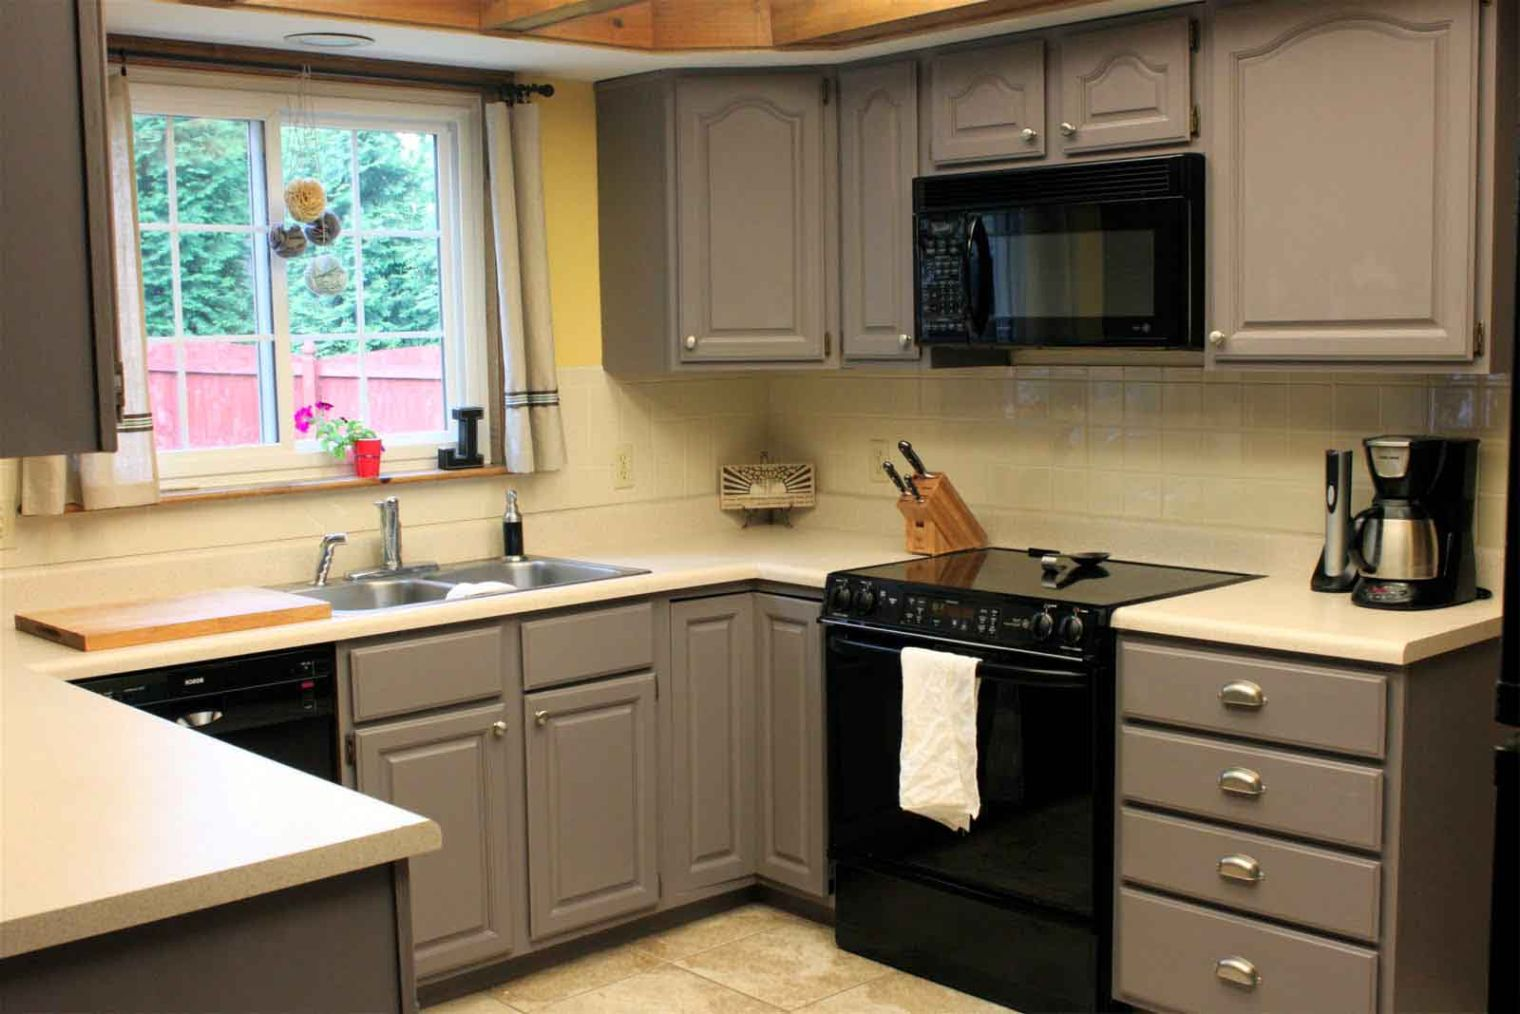 Grey painted kitchen cabinets in small kitchen space for Kitchen cabinets for small kitchen